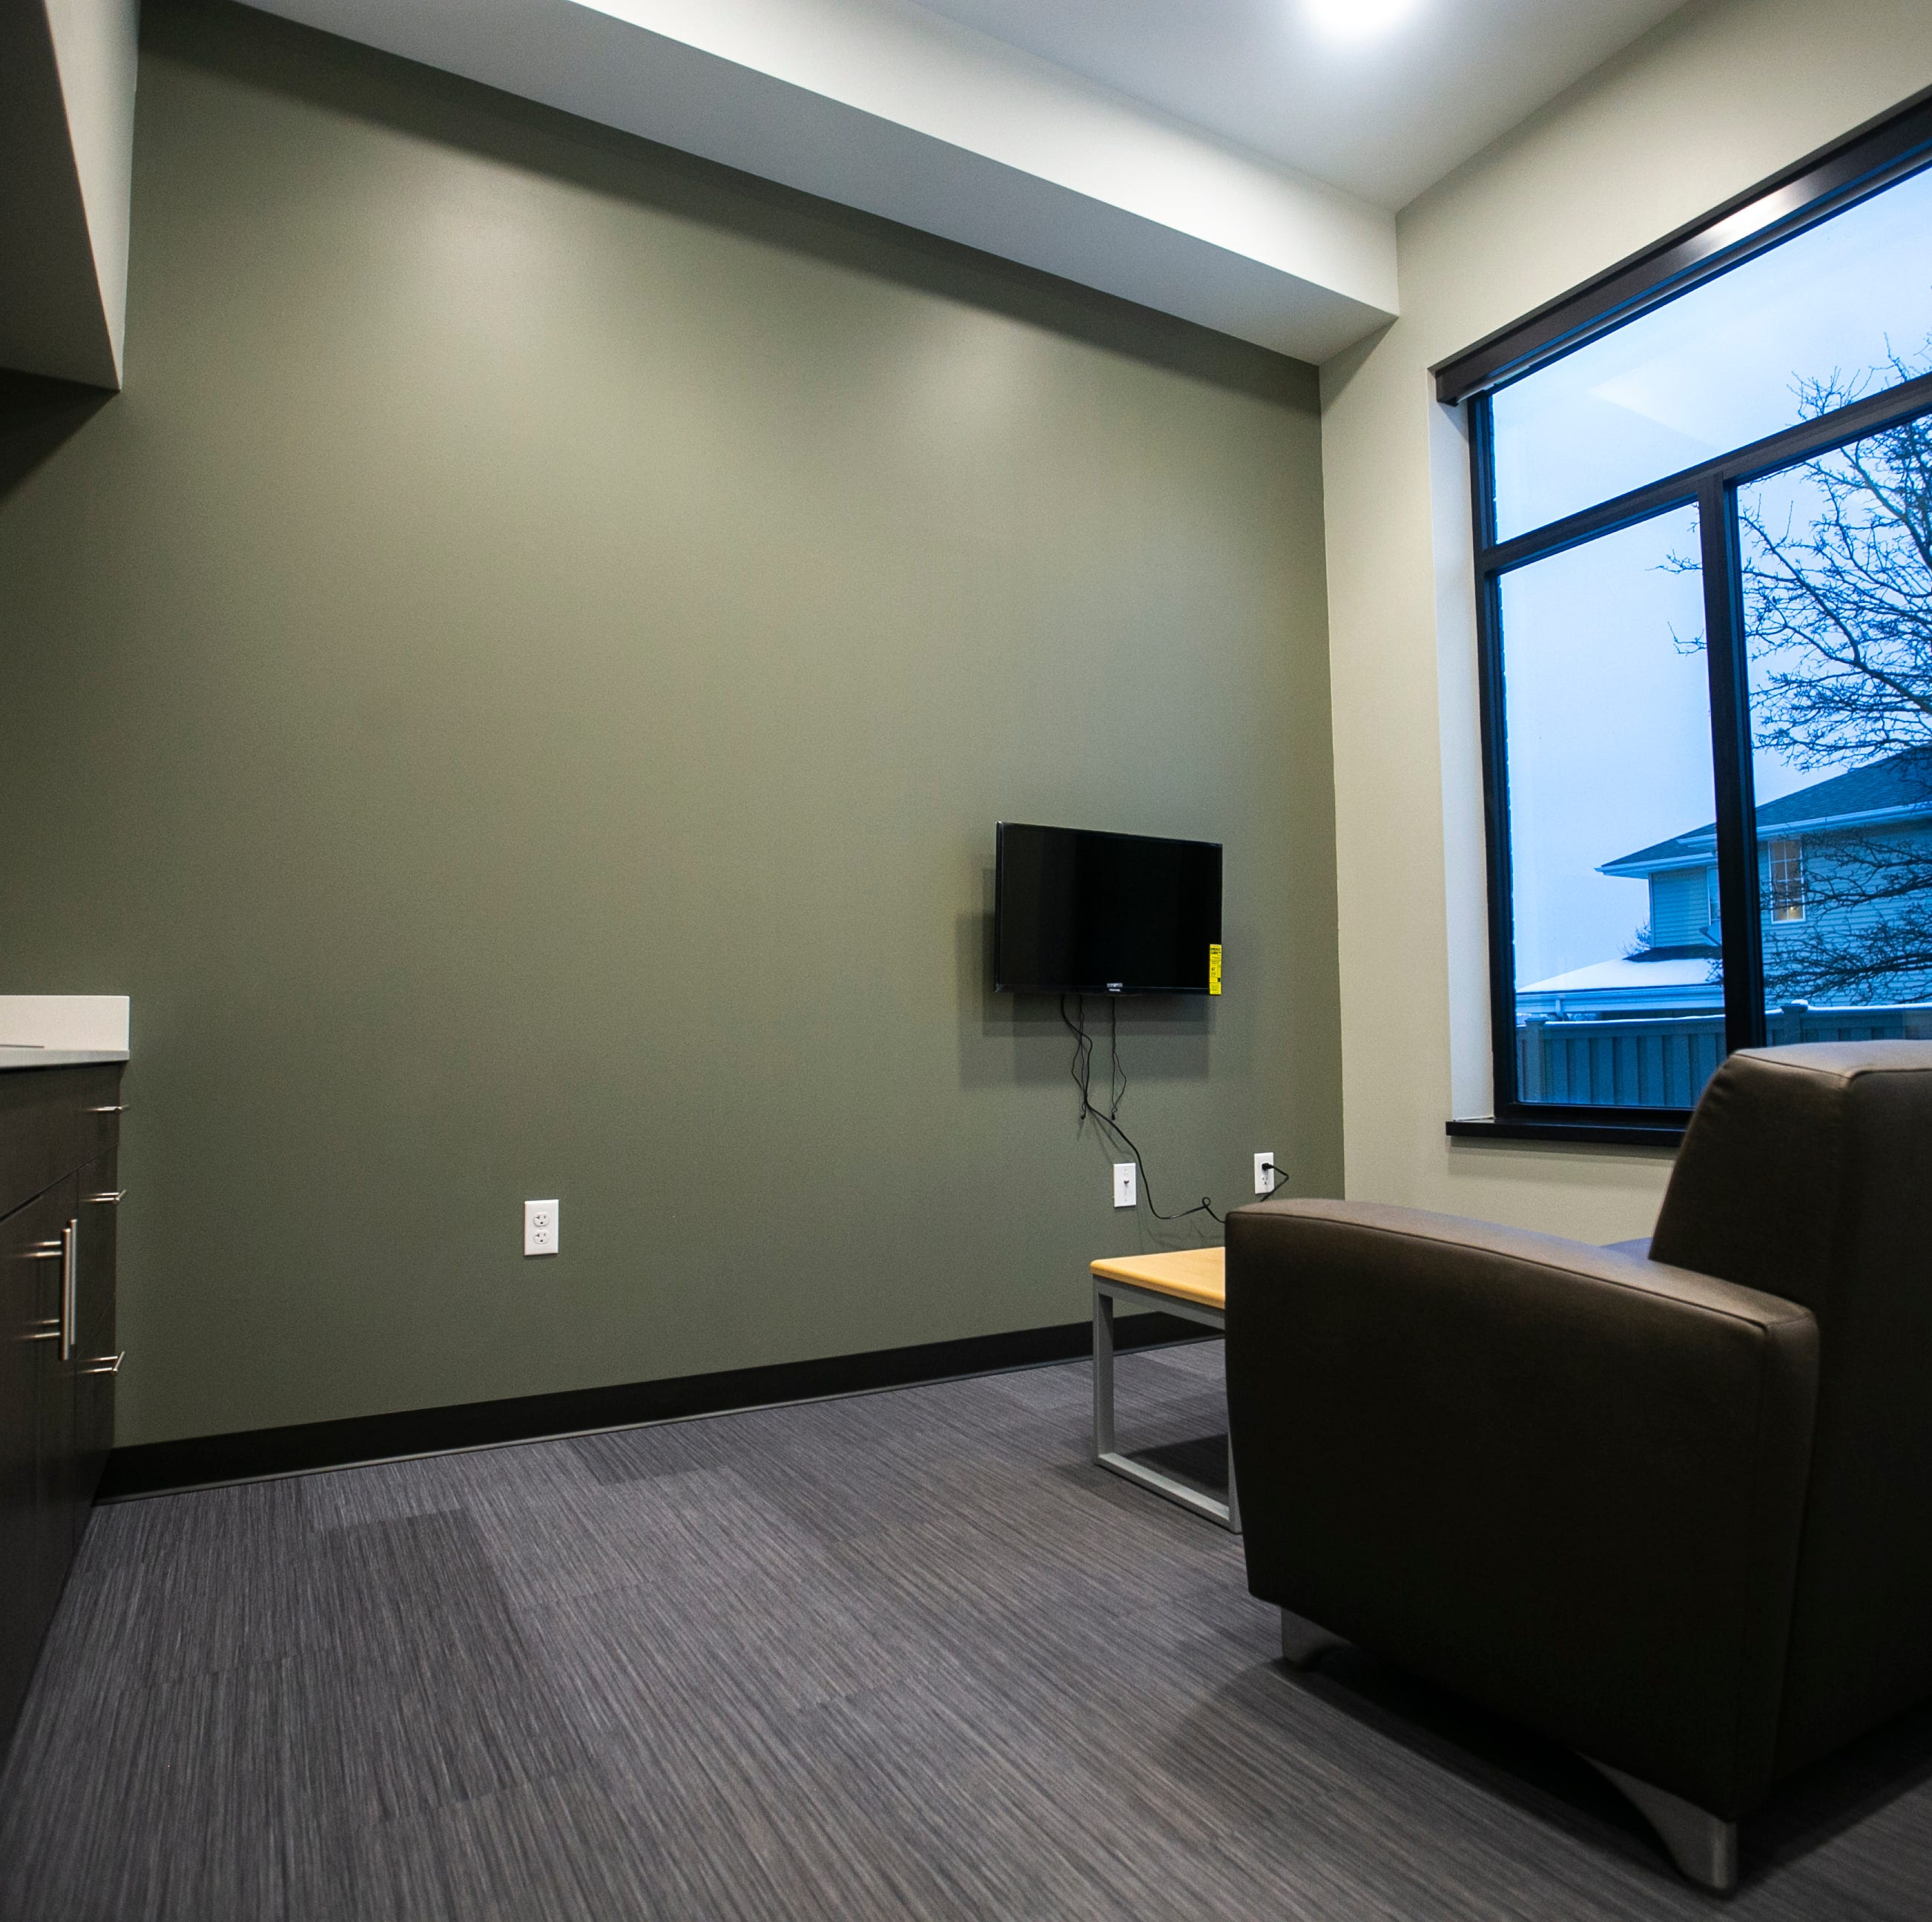 First look inside Cross Park Place, Iowa City's new 'housing first' solution